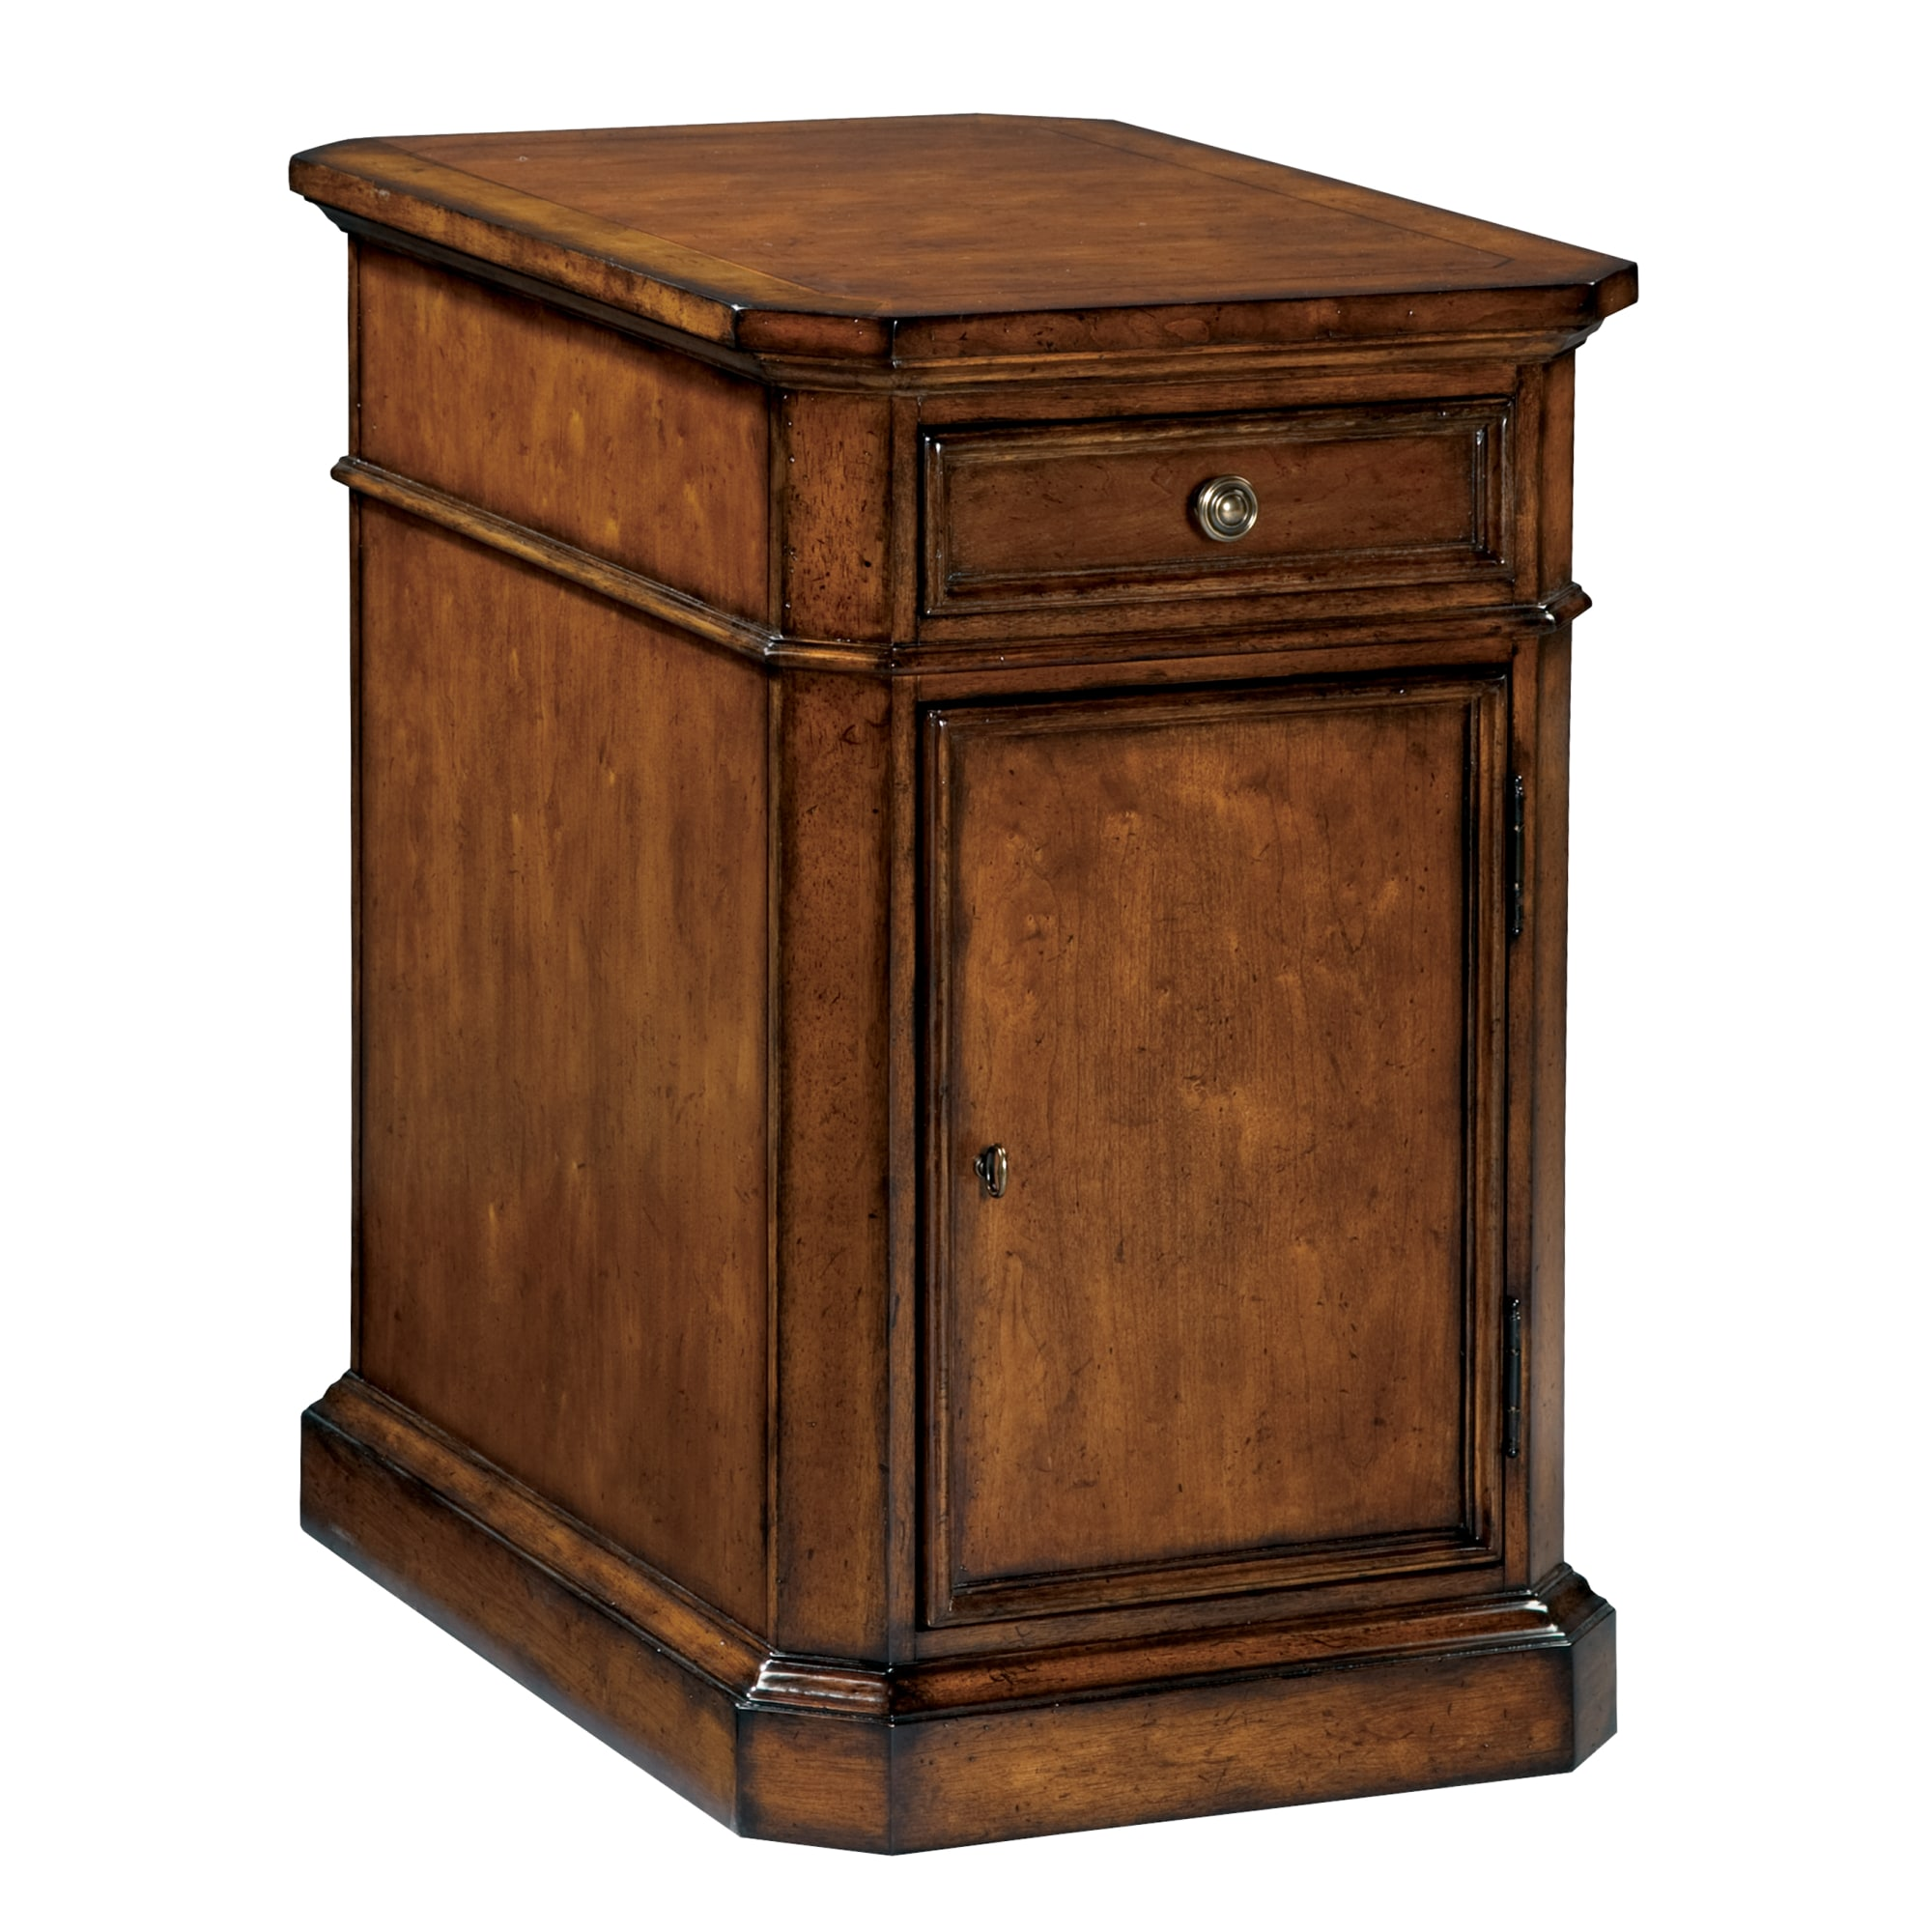 Image for 1-1106 European Legacy Storage End Table from Hekman Official Website